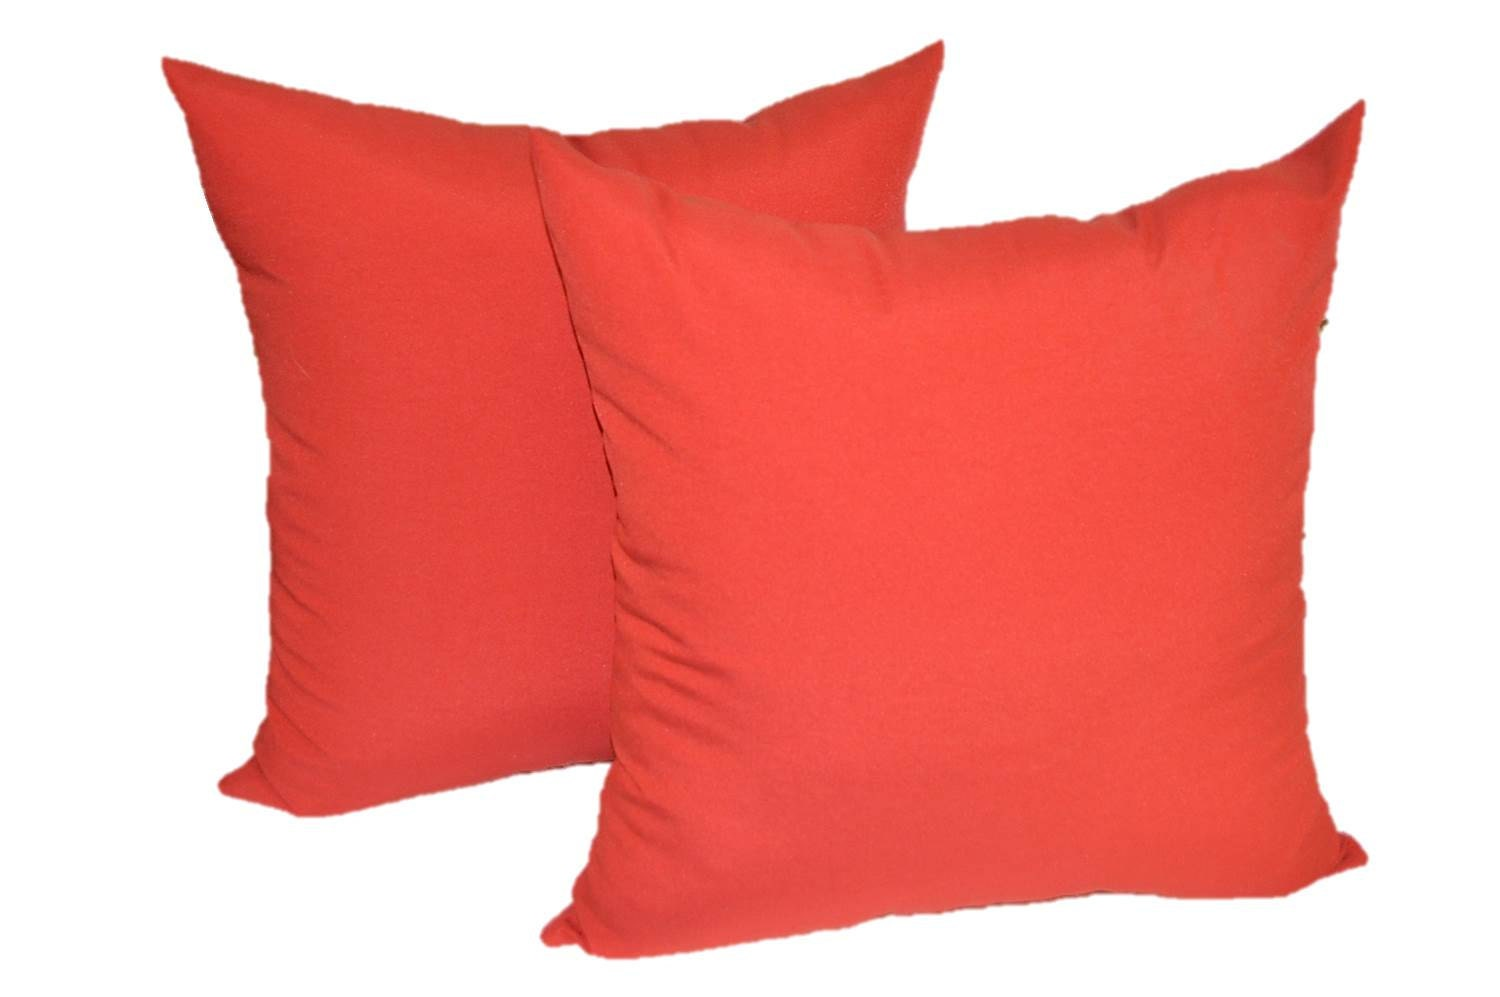 SET OF 2 17 Solid Red Decorative Throw Pillows